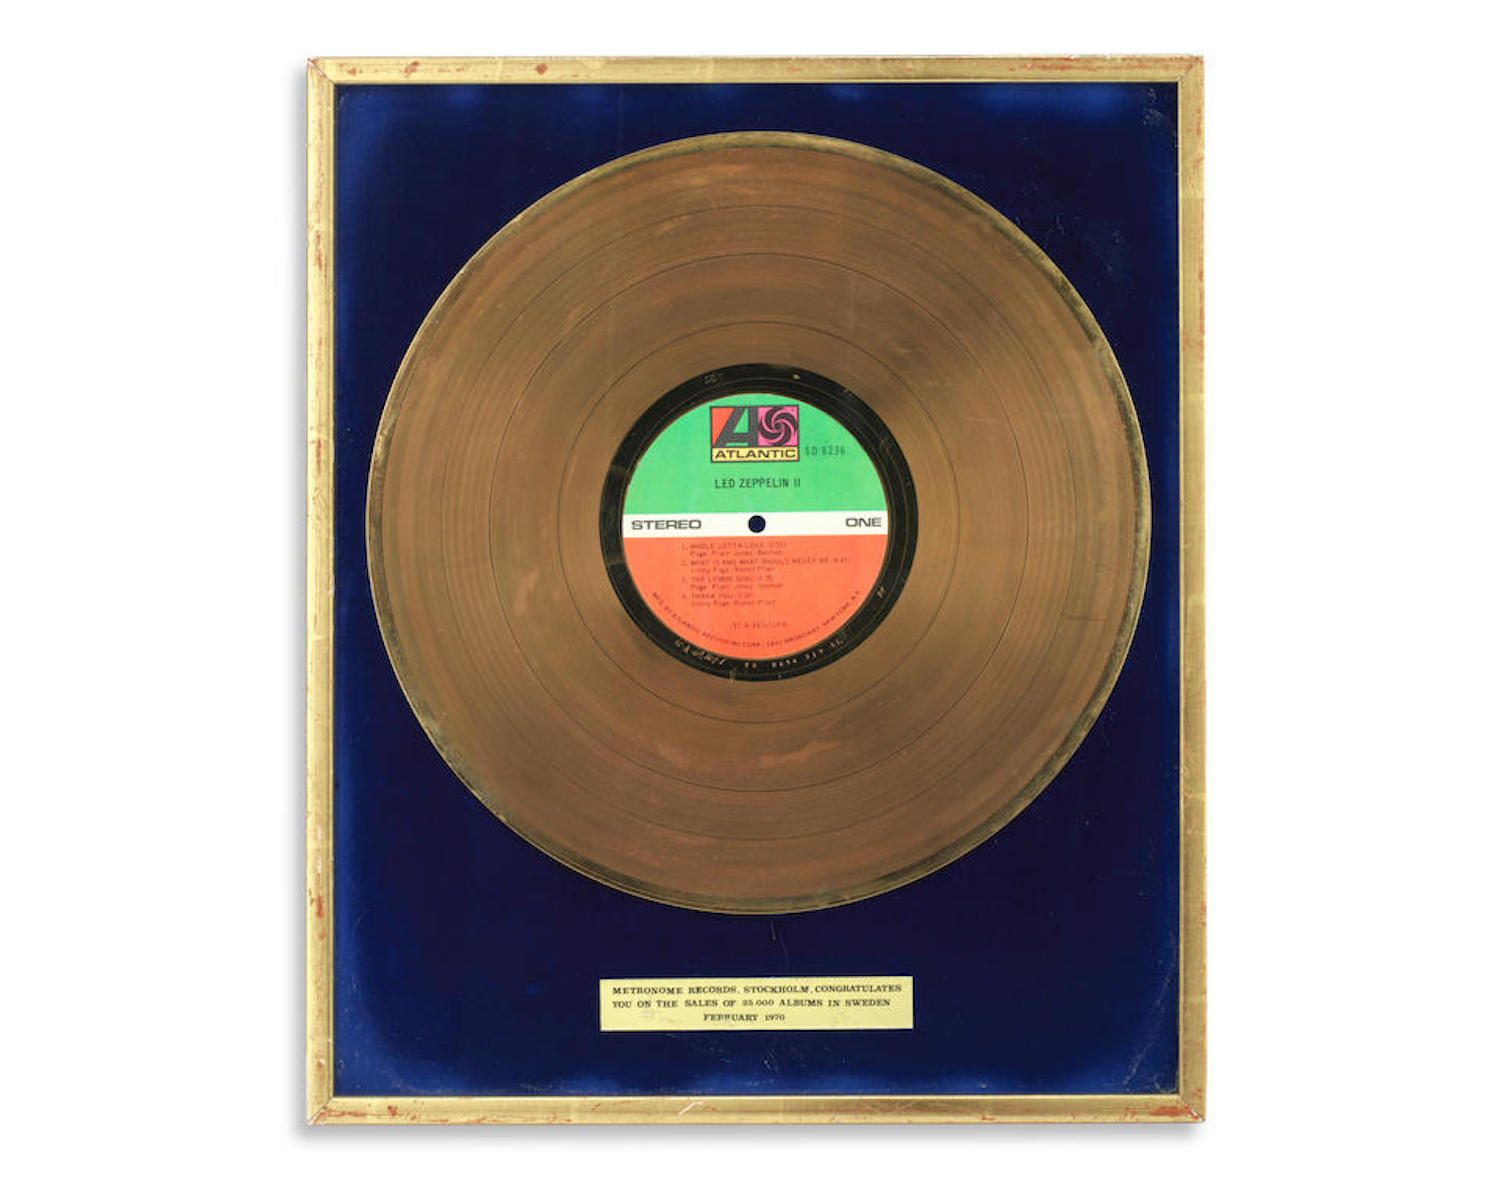 Our ultimate Christmas gift guide for Led Zeppelin fans